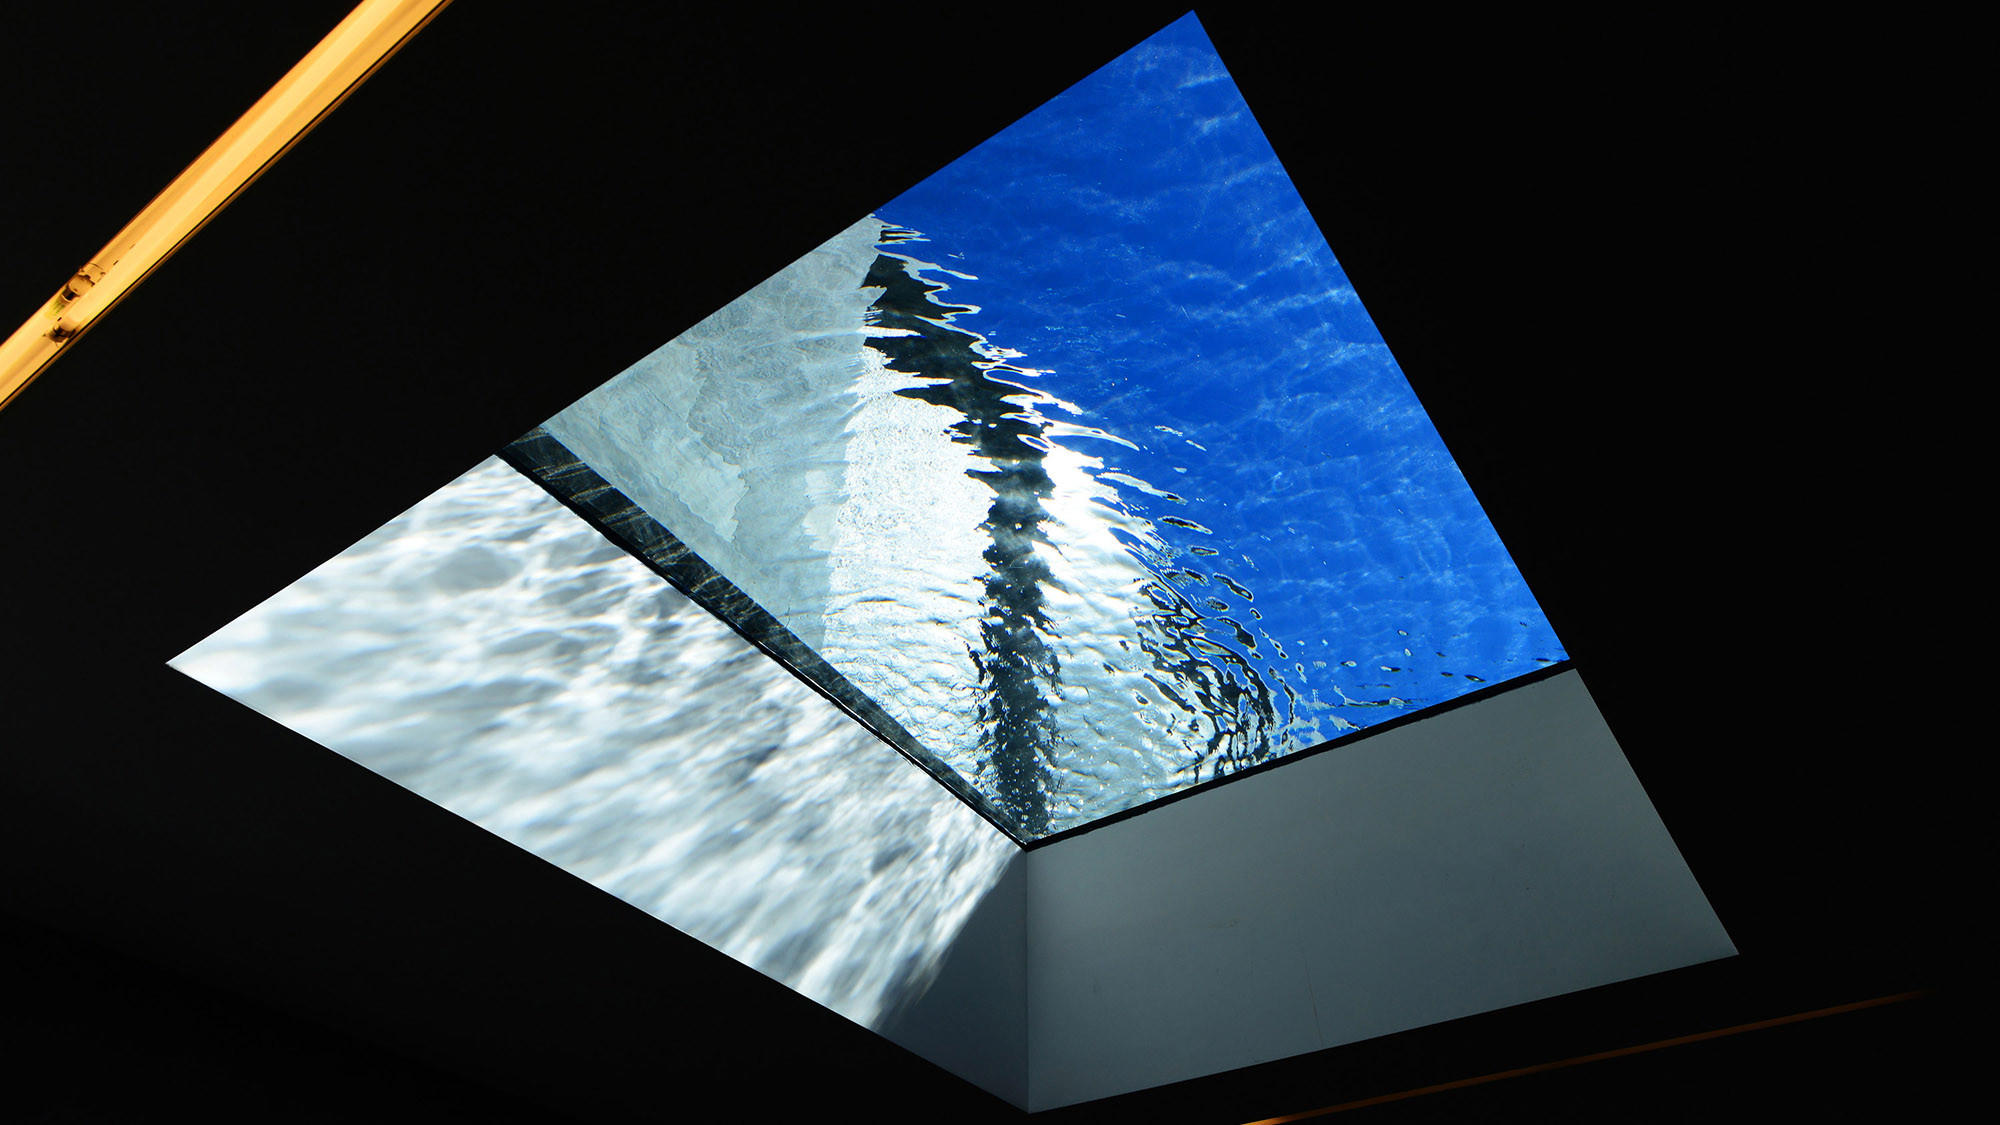 This peekaboo pool was designed by architect Ronald Wilson and Skip Phillips of Questar Pools and built by La Jolla Pools. The window is on the bottom of the pool, looking into the living room.